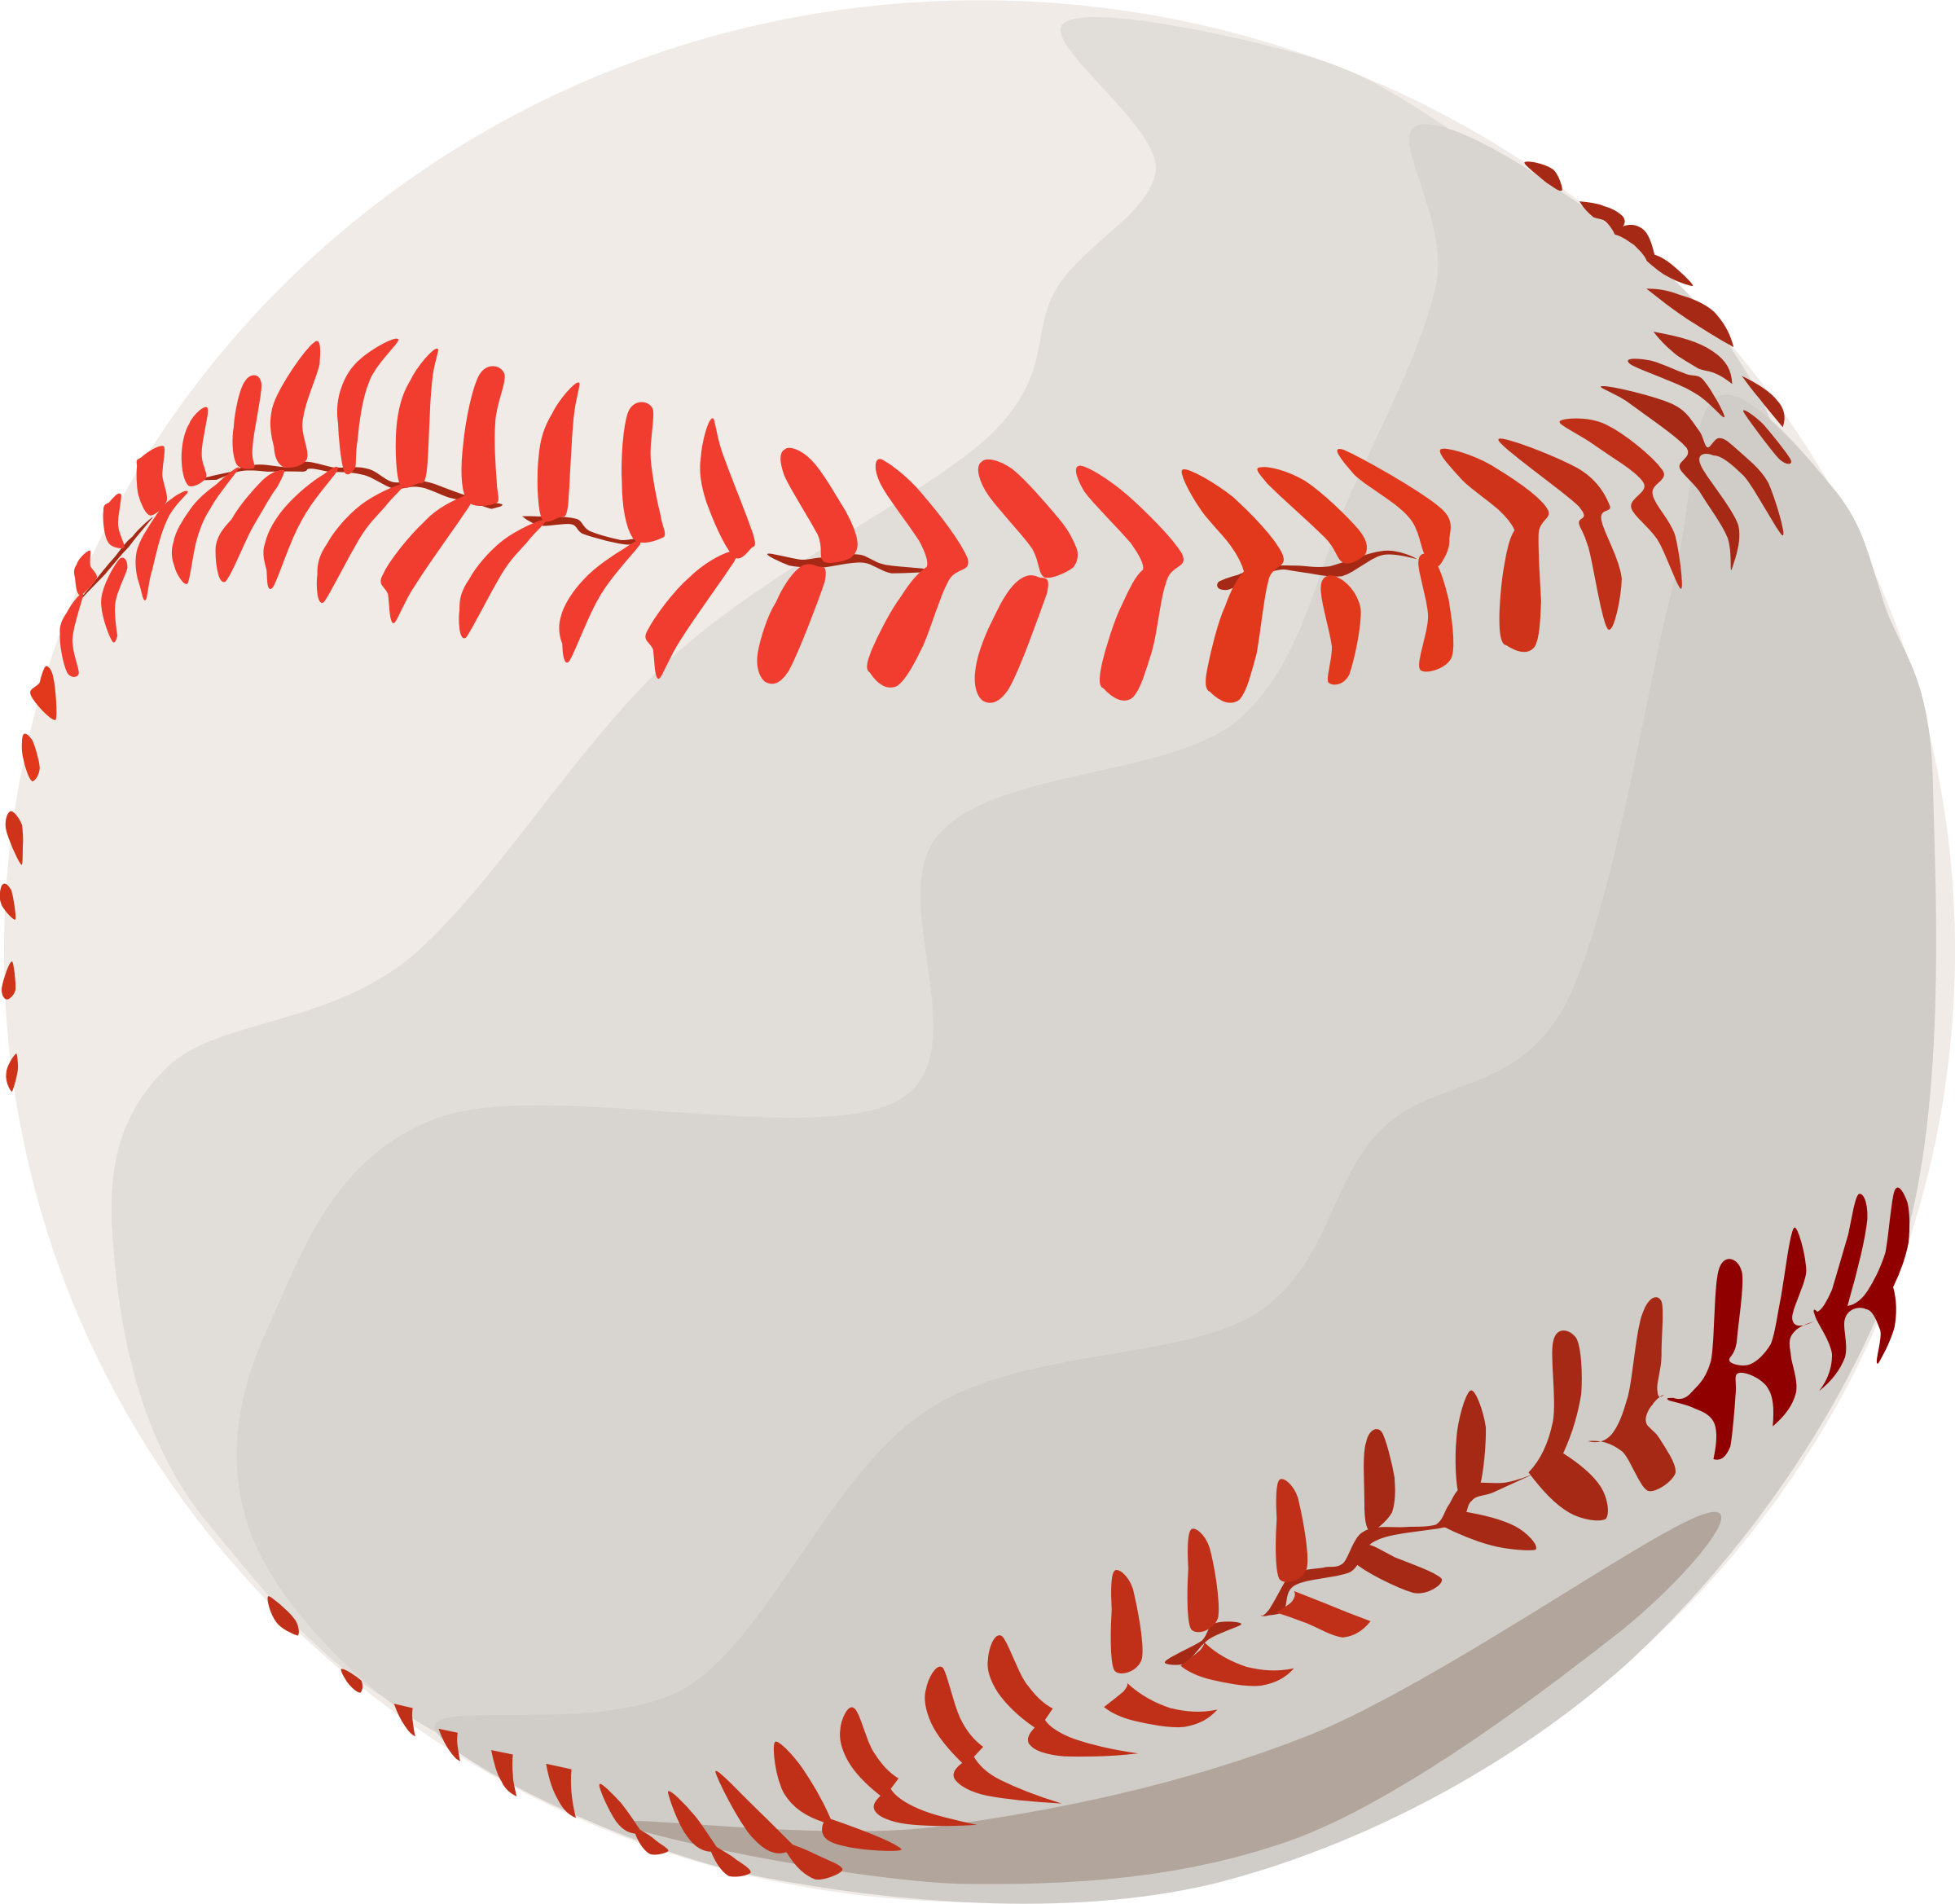 Baseball clipart large clipart library stock Baseball Transparent Clipart clipart library stock